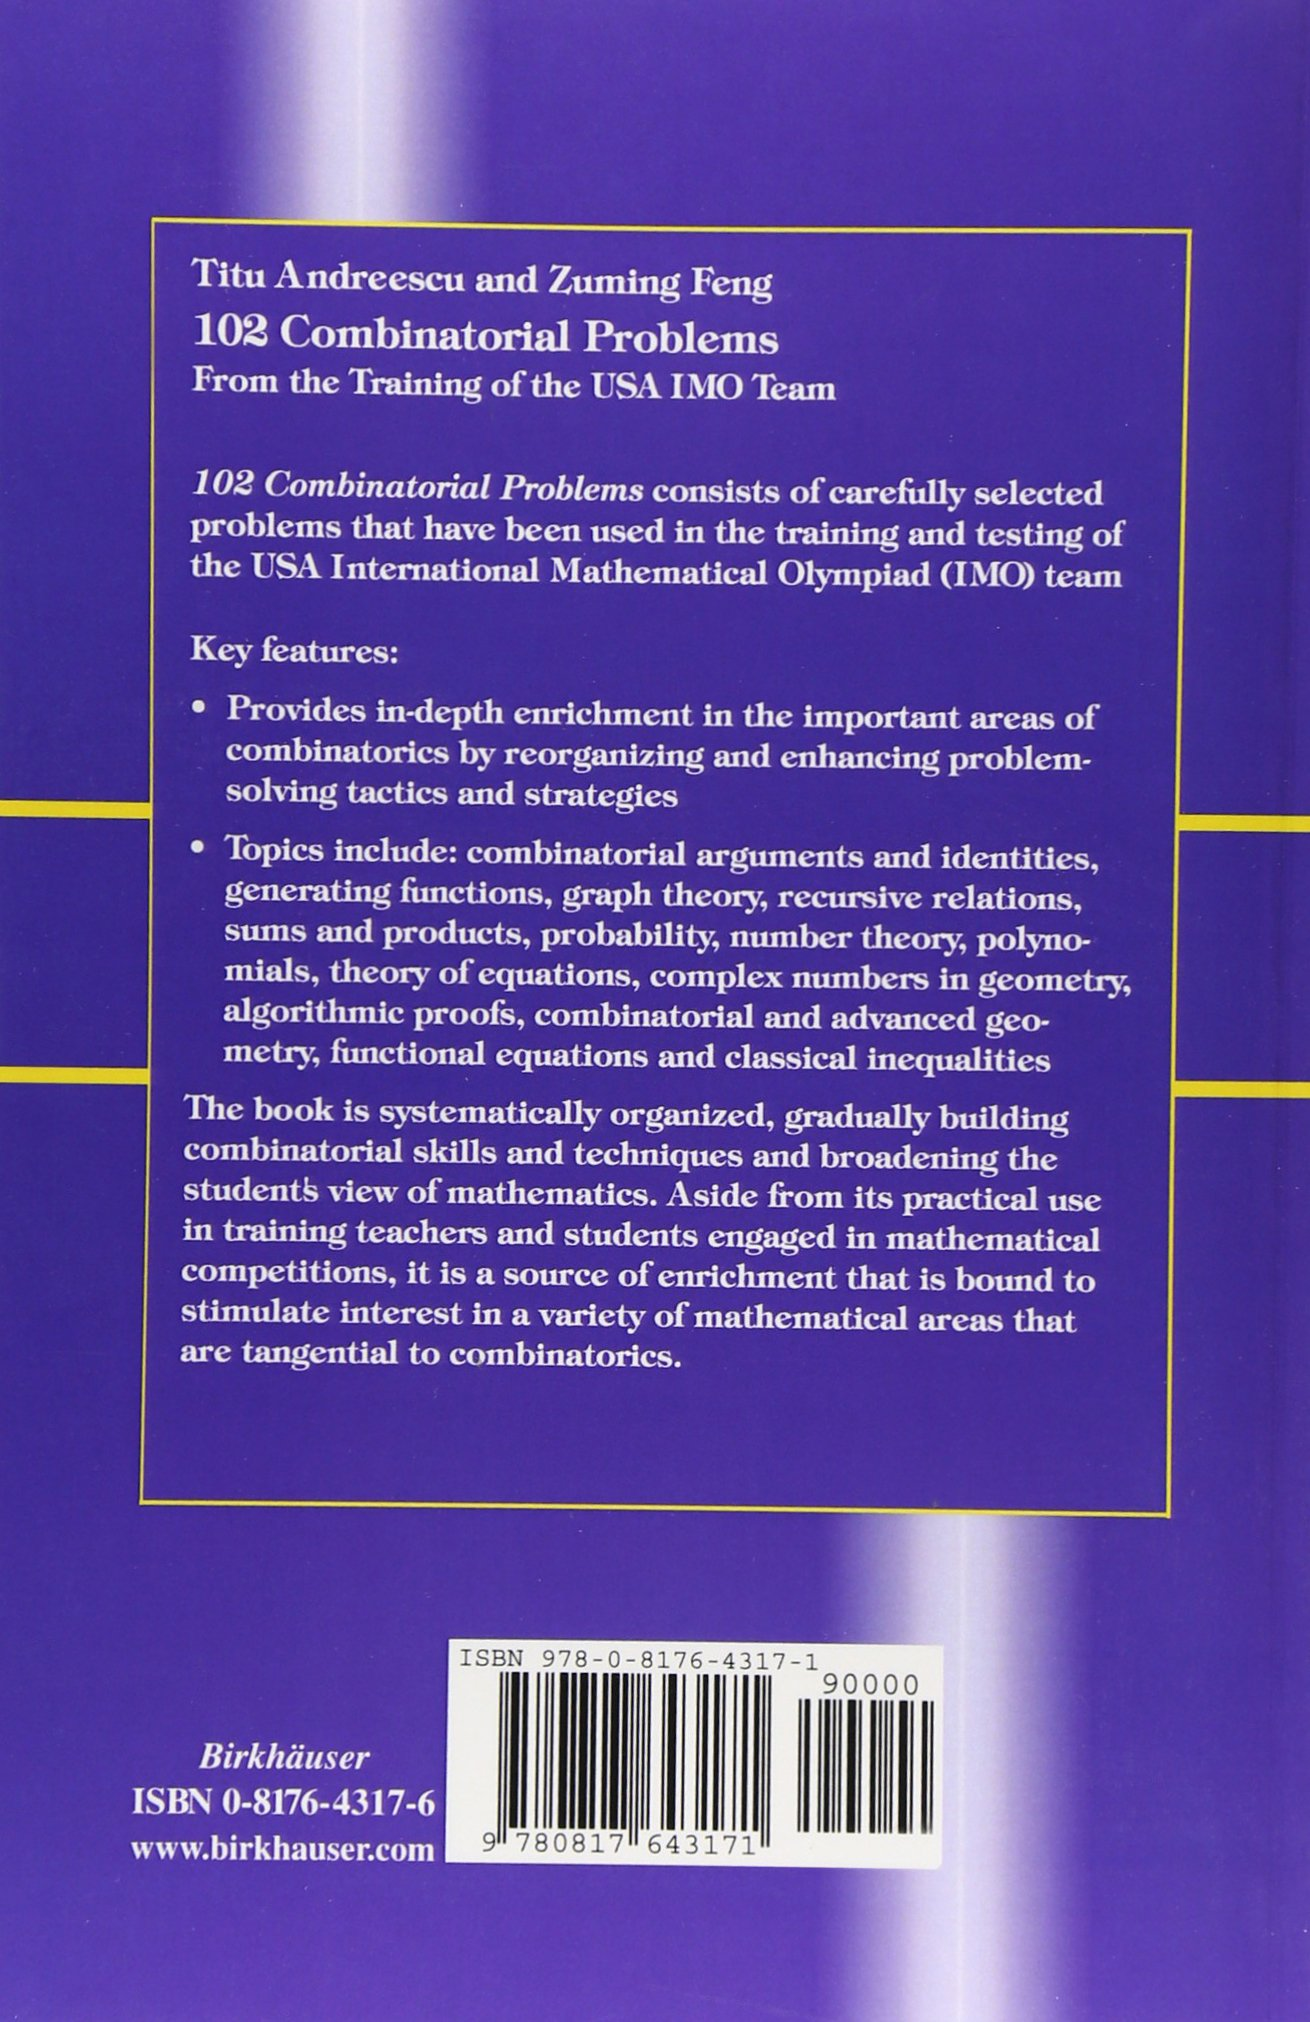 102 Combinatorial Problems: From the Training of the USA IMO Team:  Amazon.de: Titu Andreescu, Zuming Feng: Fremdsprachige Bücher